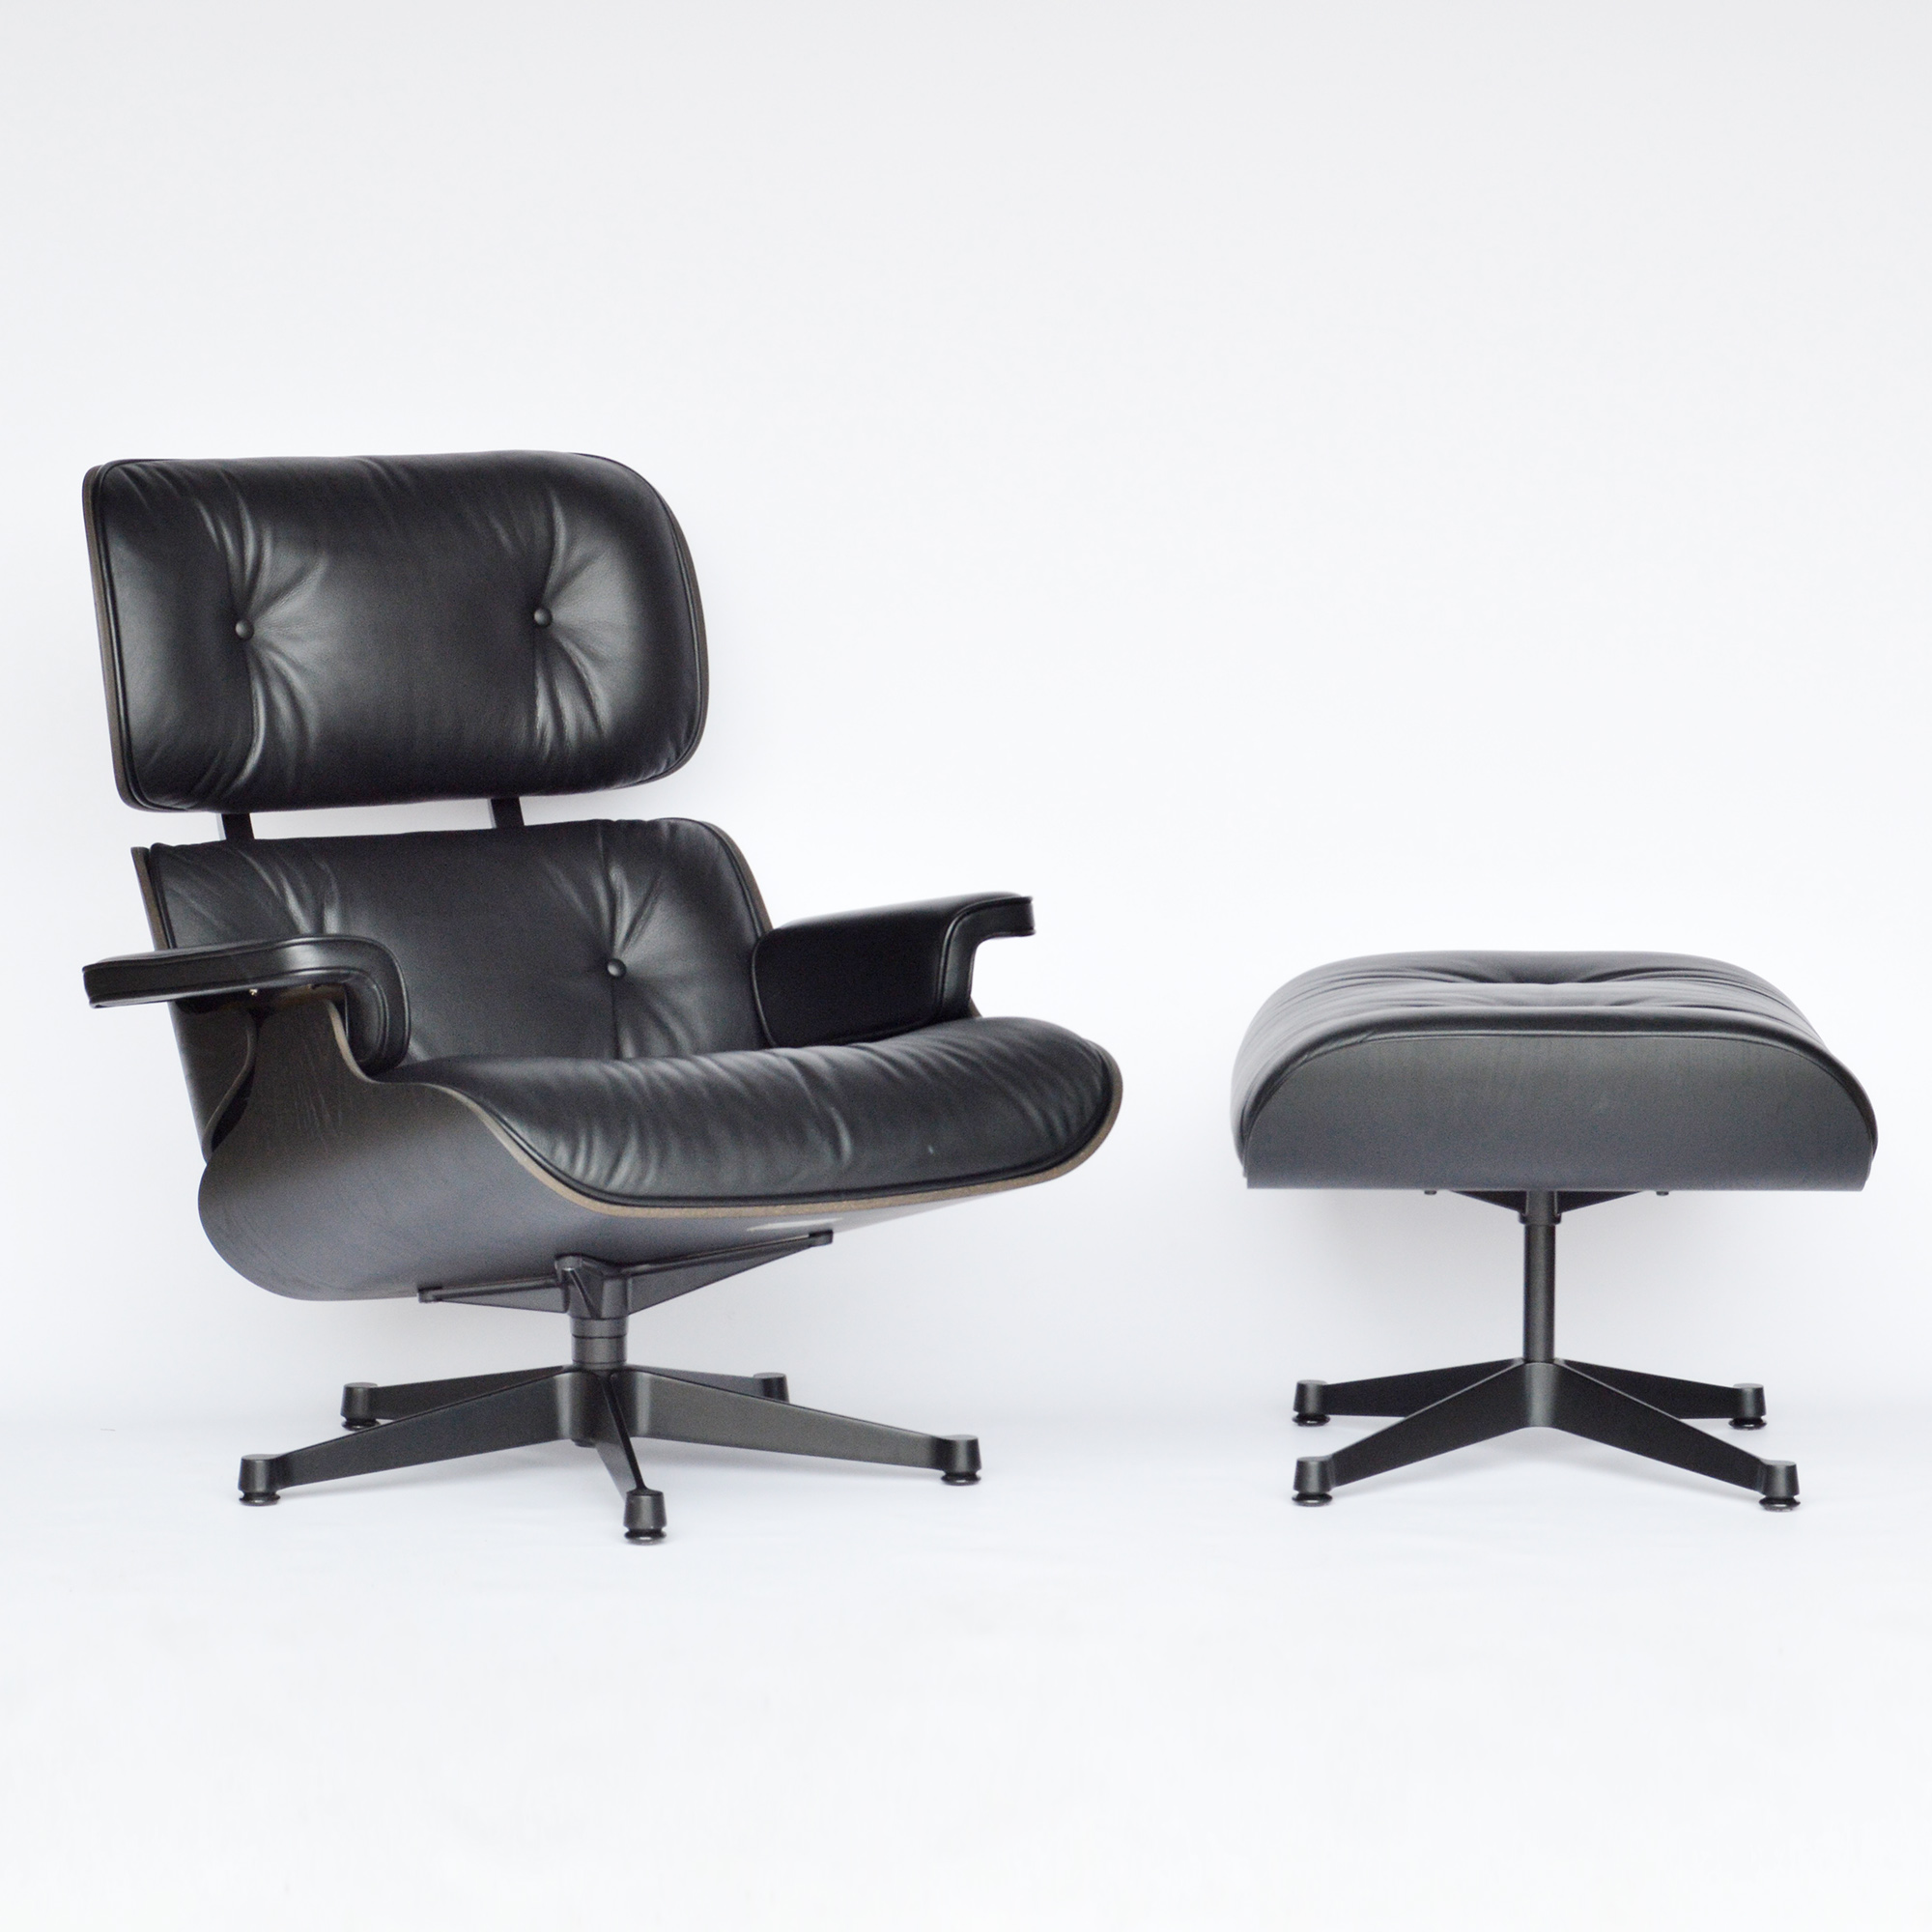 Dark Tone 2019 Vitra Eames Lounge Chair & Ottoman